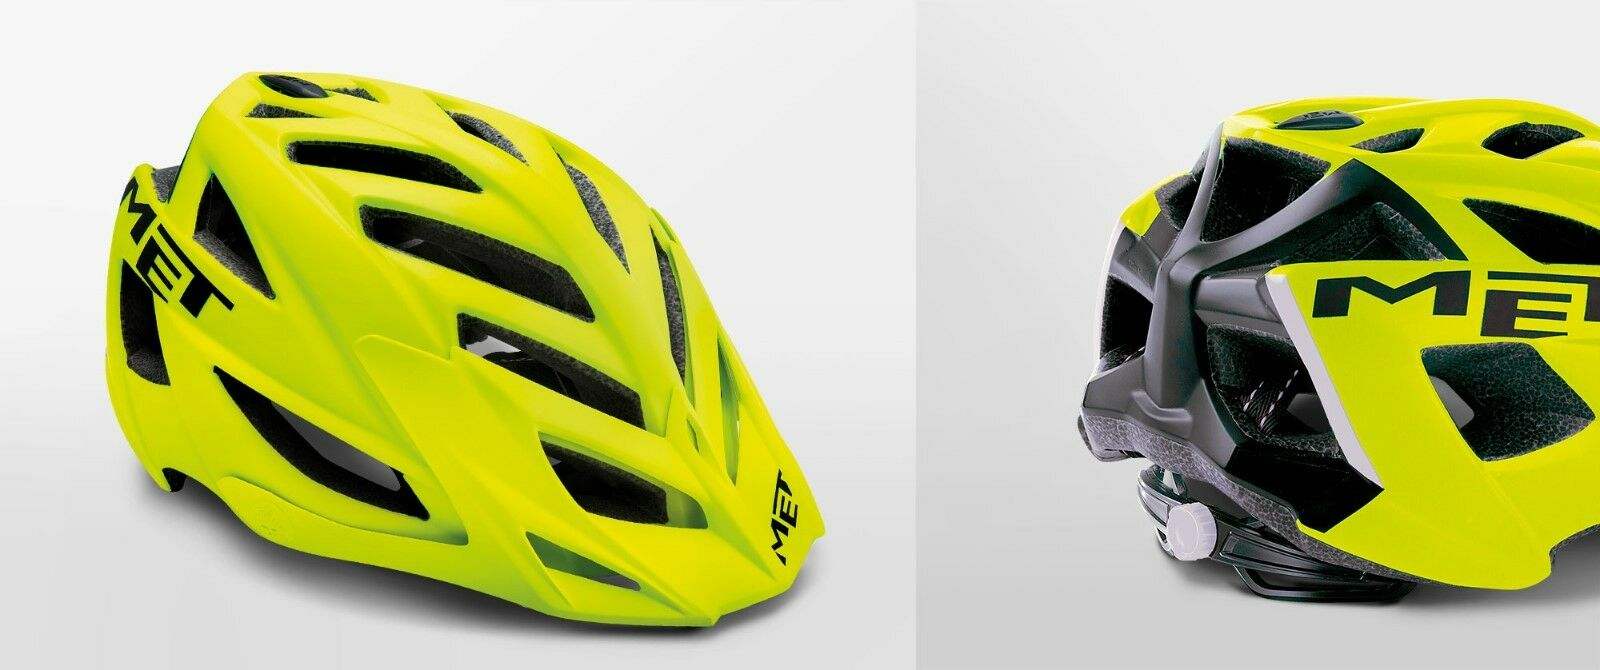 MET Terra  2019 Mountain Bike Cycling Helmet Yellow 54-61cm Unisize  fast shipping to you